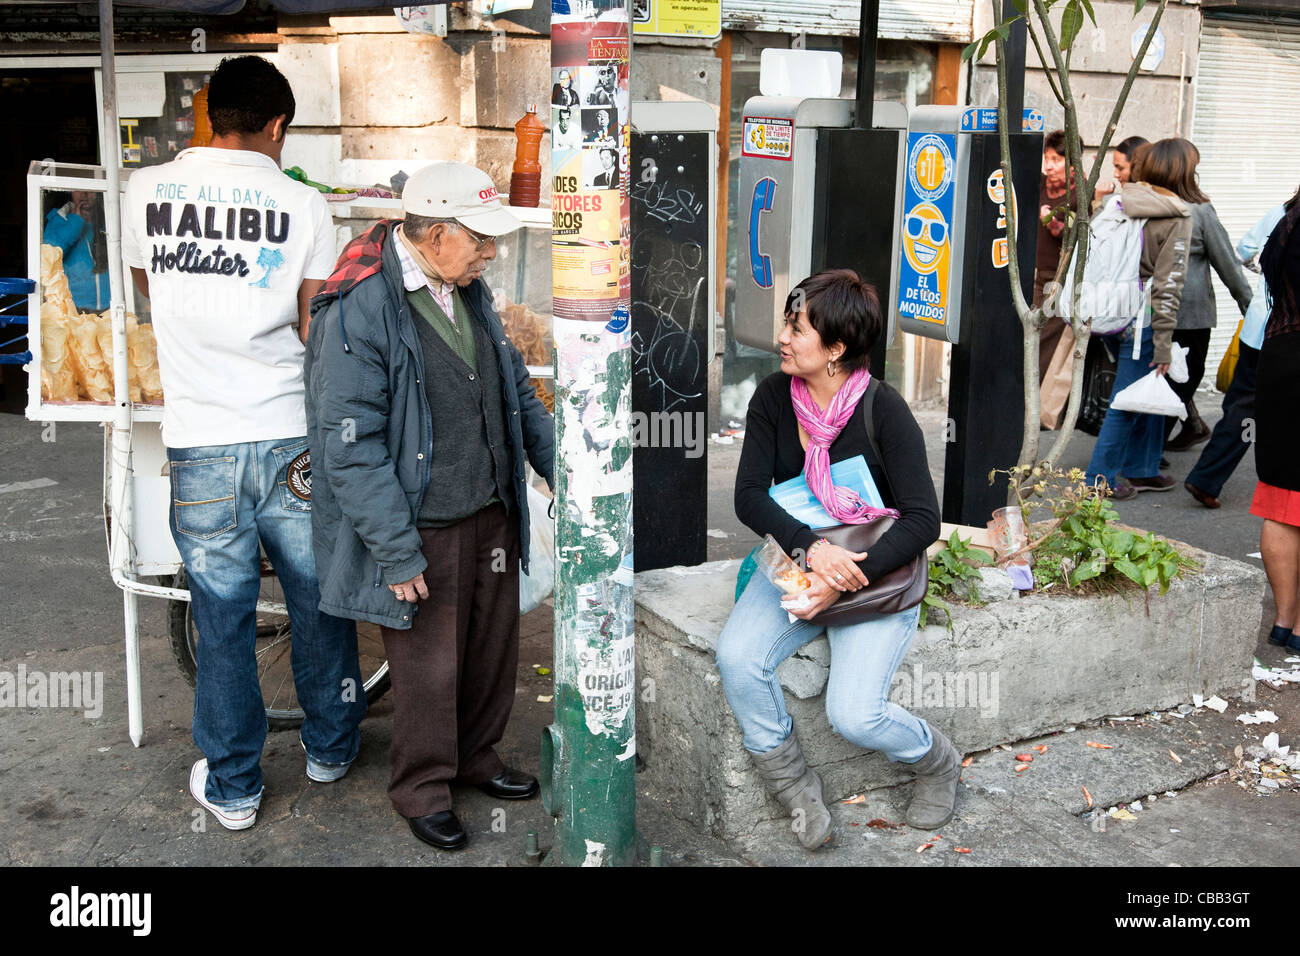 short kindly grandfatherly old man socializing with younger married woman on busy streetcorner Roma district Mexico - Stock Image